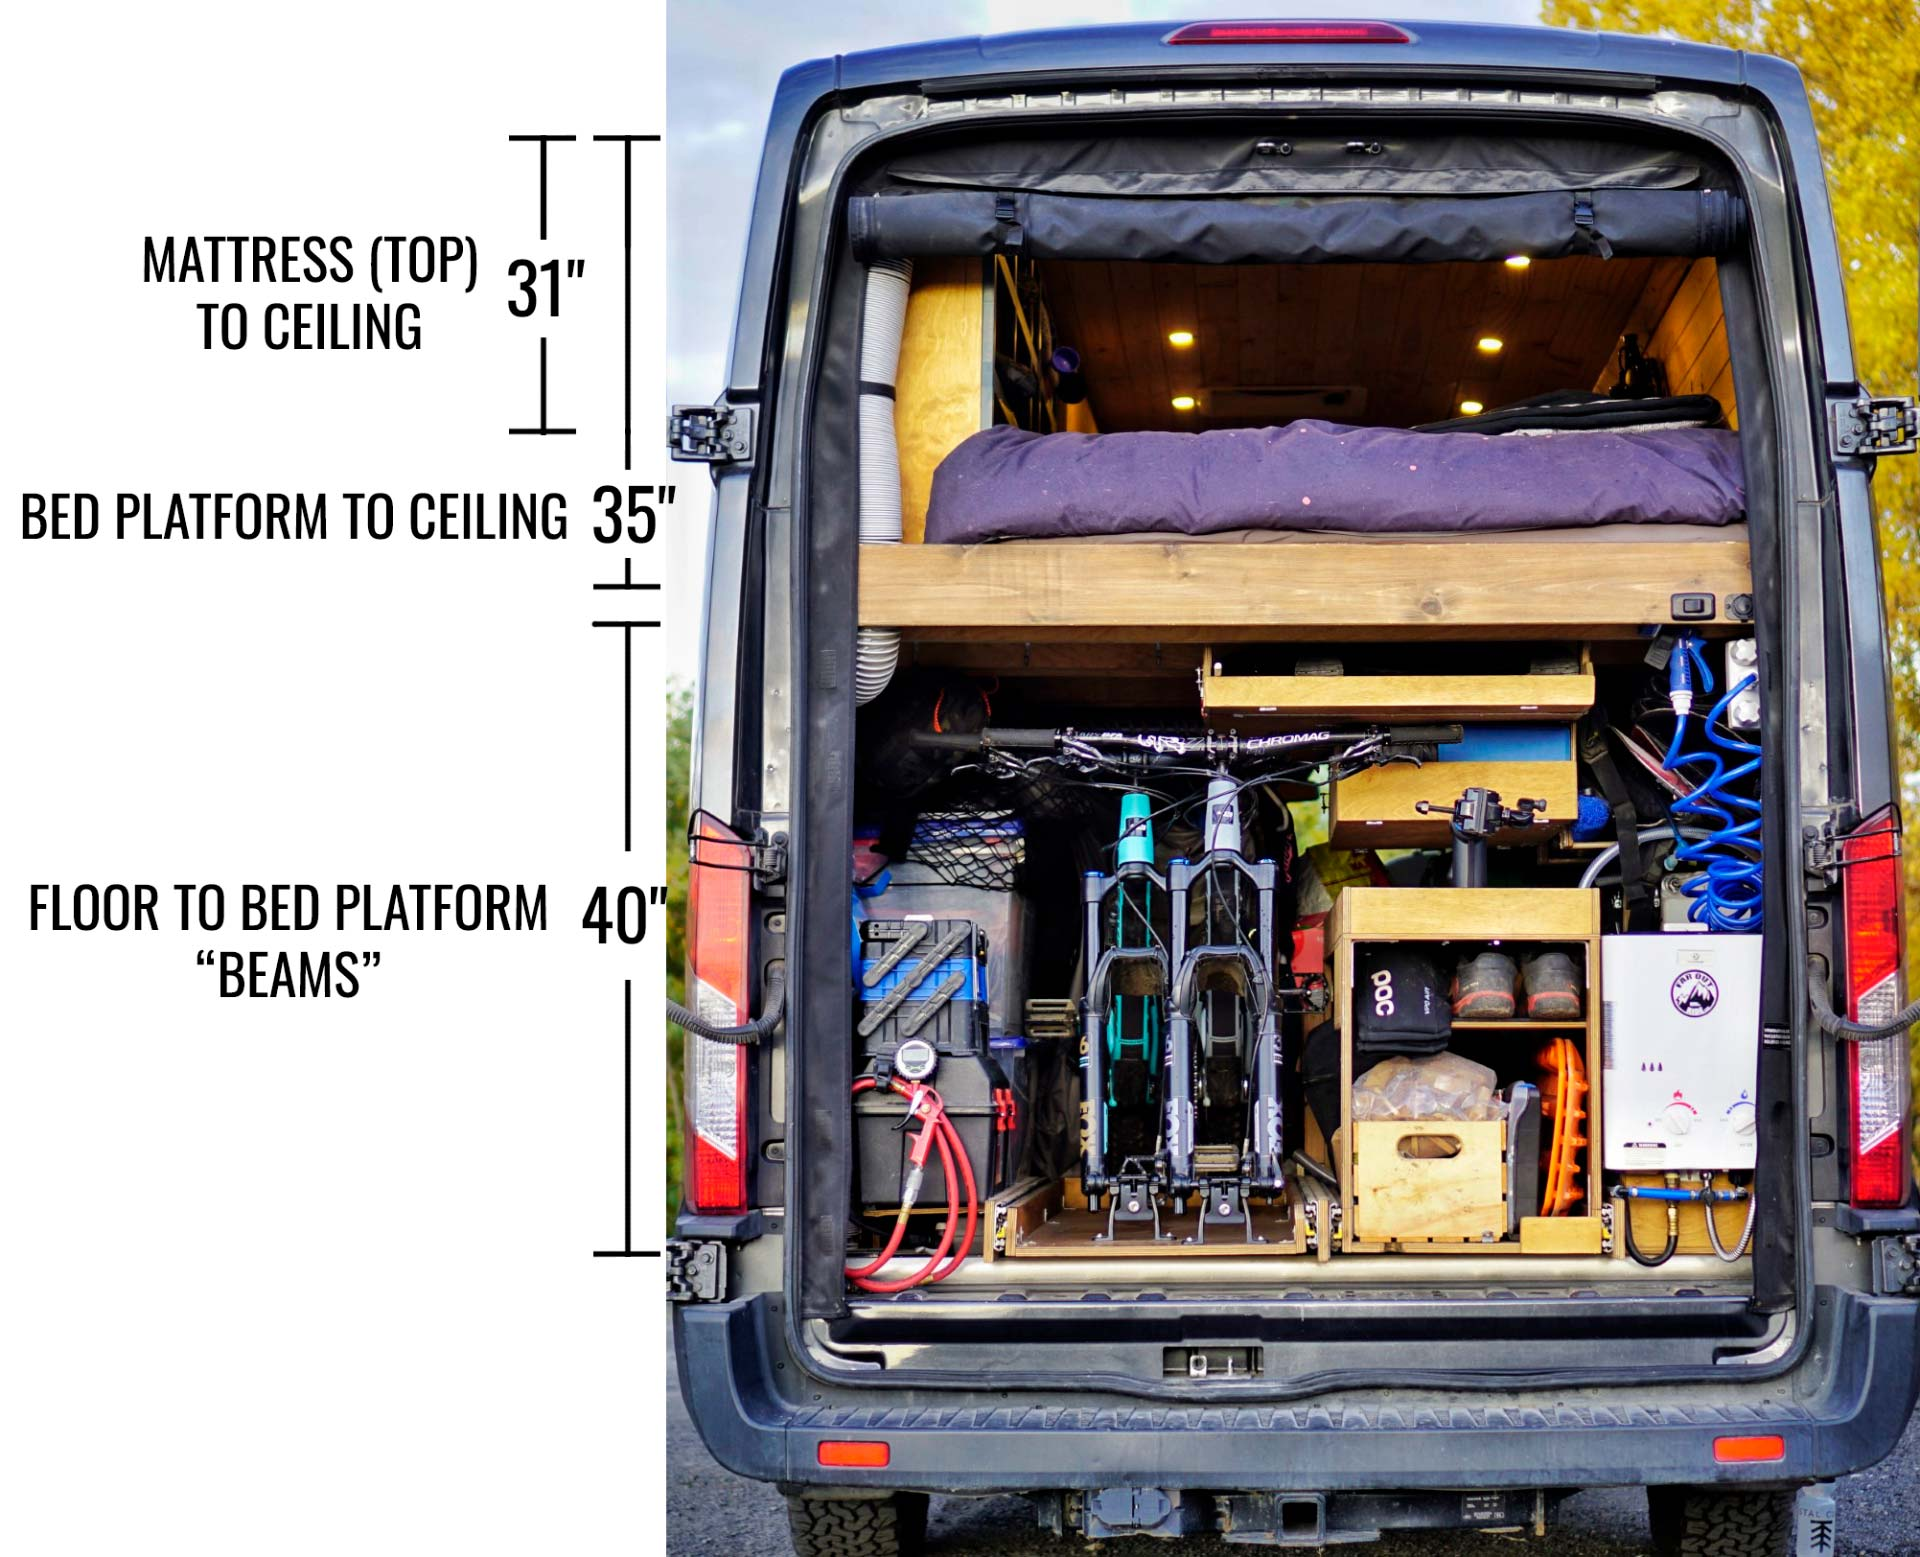 Slide Out Bike Rack Storage For Van How To Diy Build Faroutride